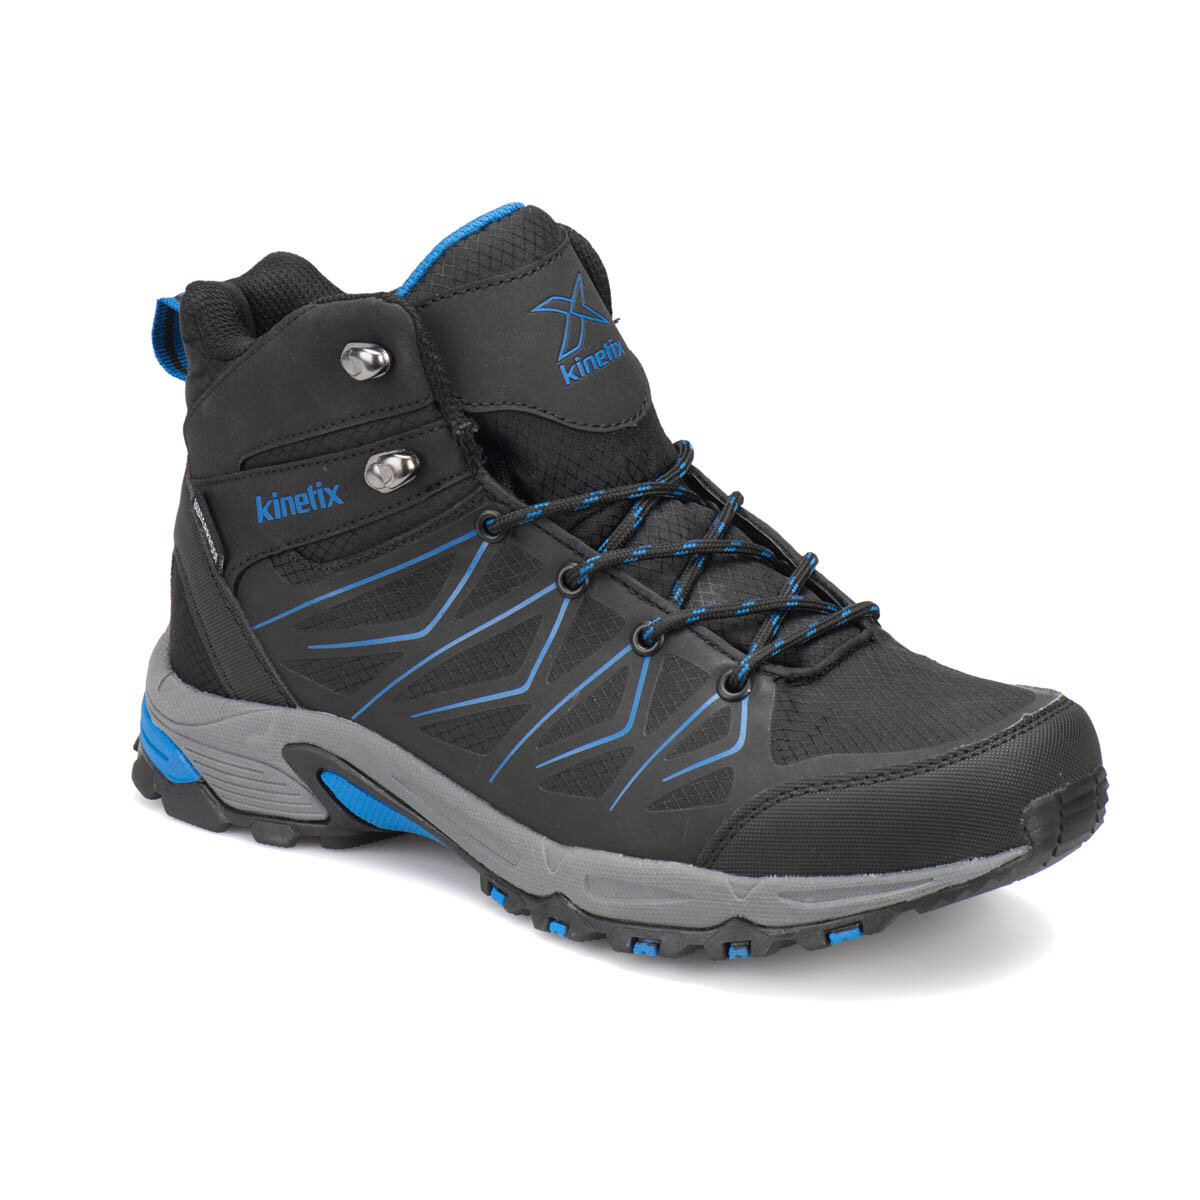 FLO TROY HI WP Black Men 'S Trekking Shoes KINETIX